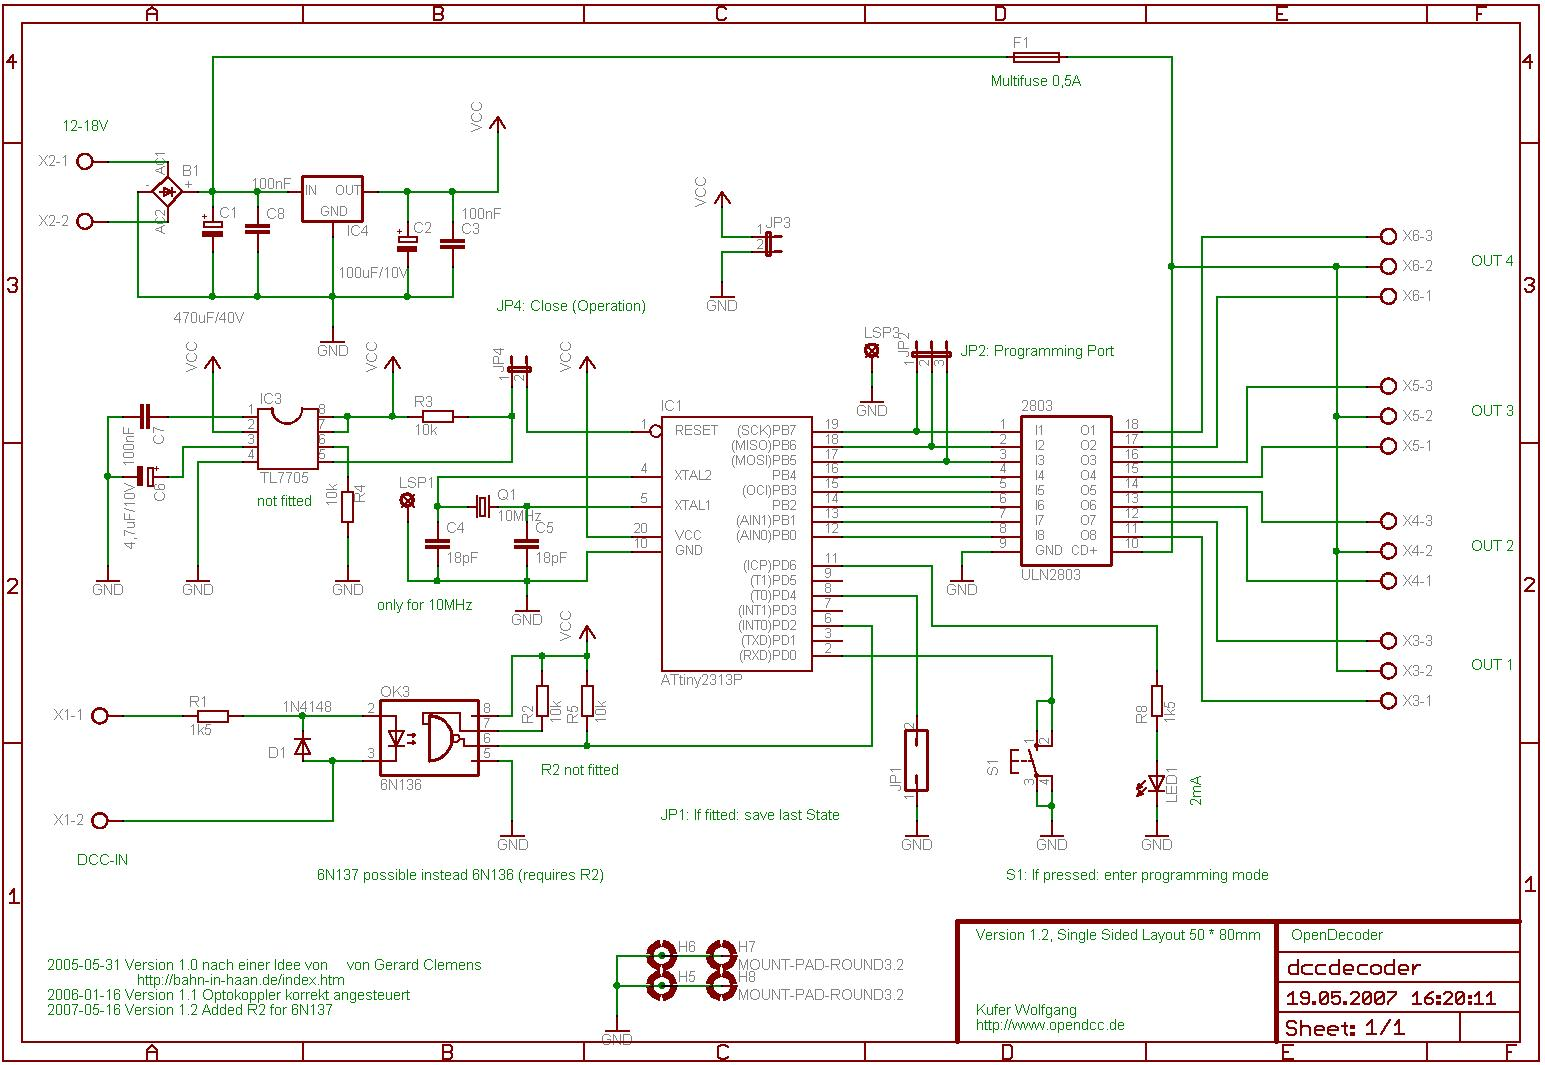 Opendecoder For Dcc Schematics Genie Drive Motor Wiring Diagram Connection V12 Pdf